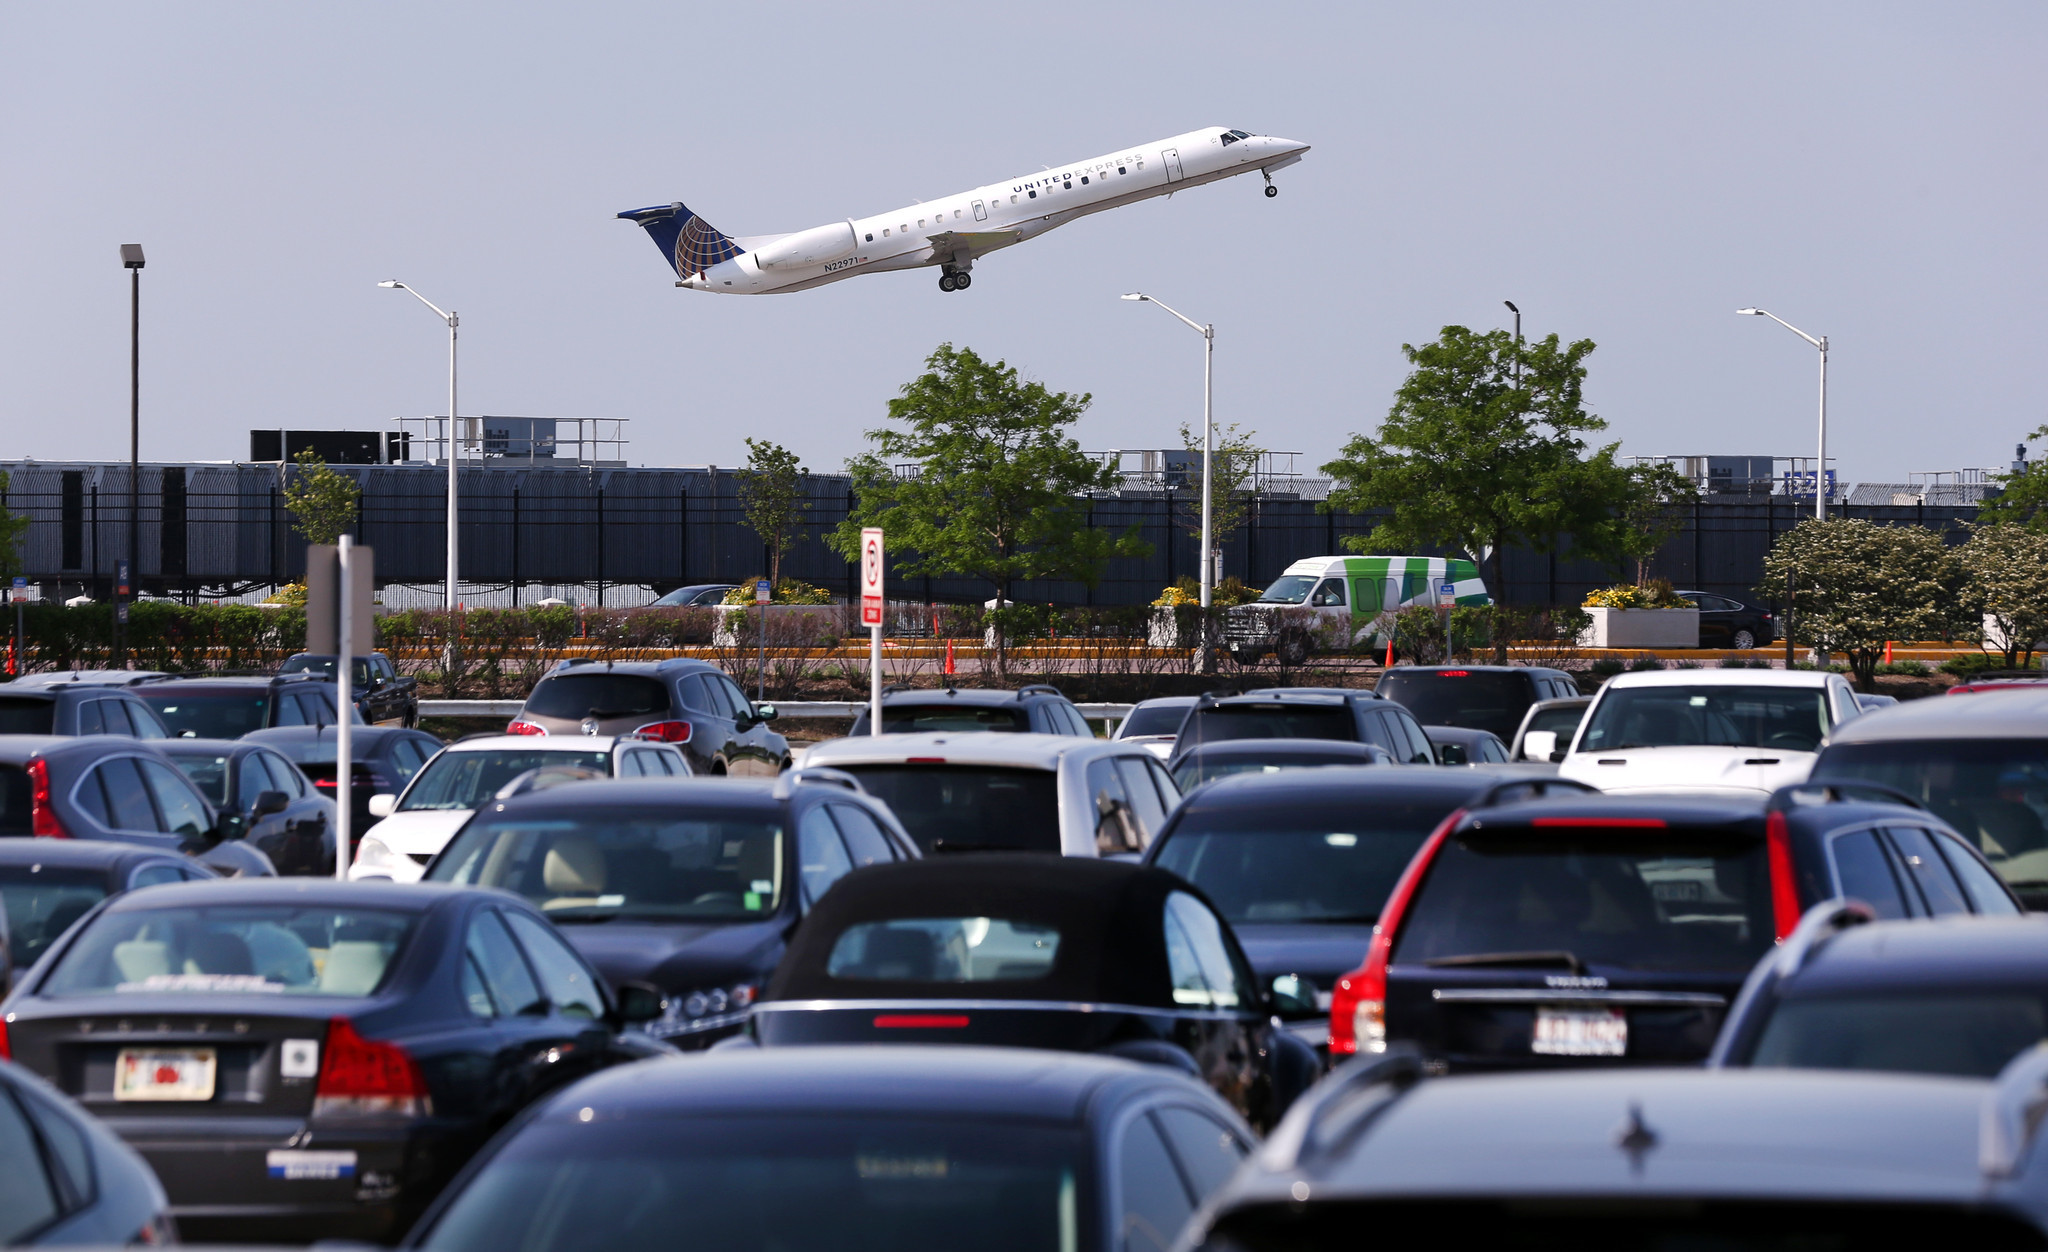 Extra Car Airport Parking: Chicago Could Offer Premium Airport Parking For $10 A Day